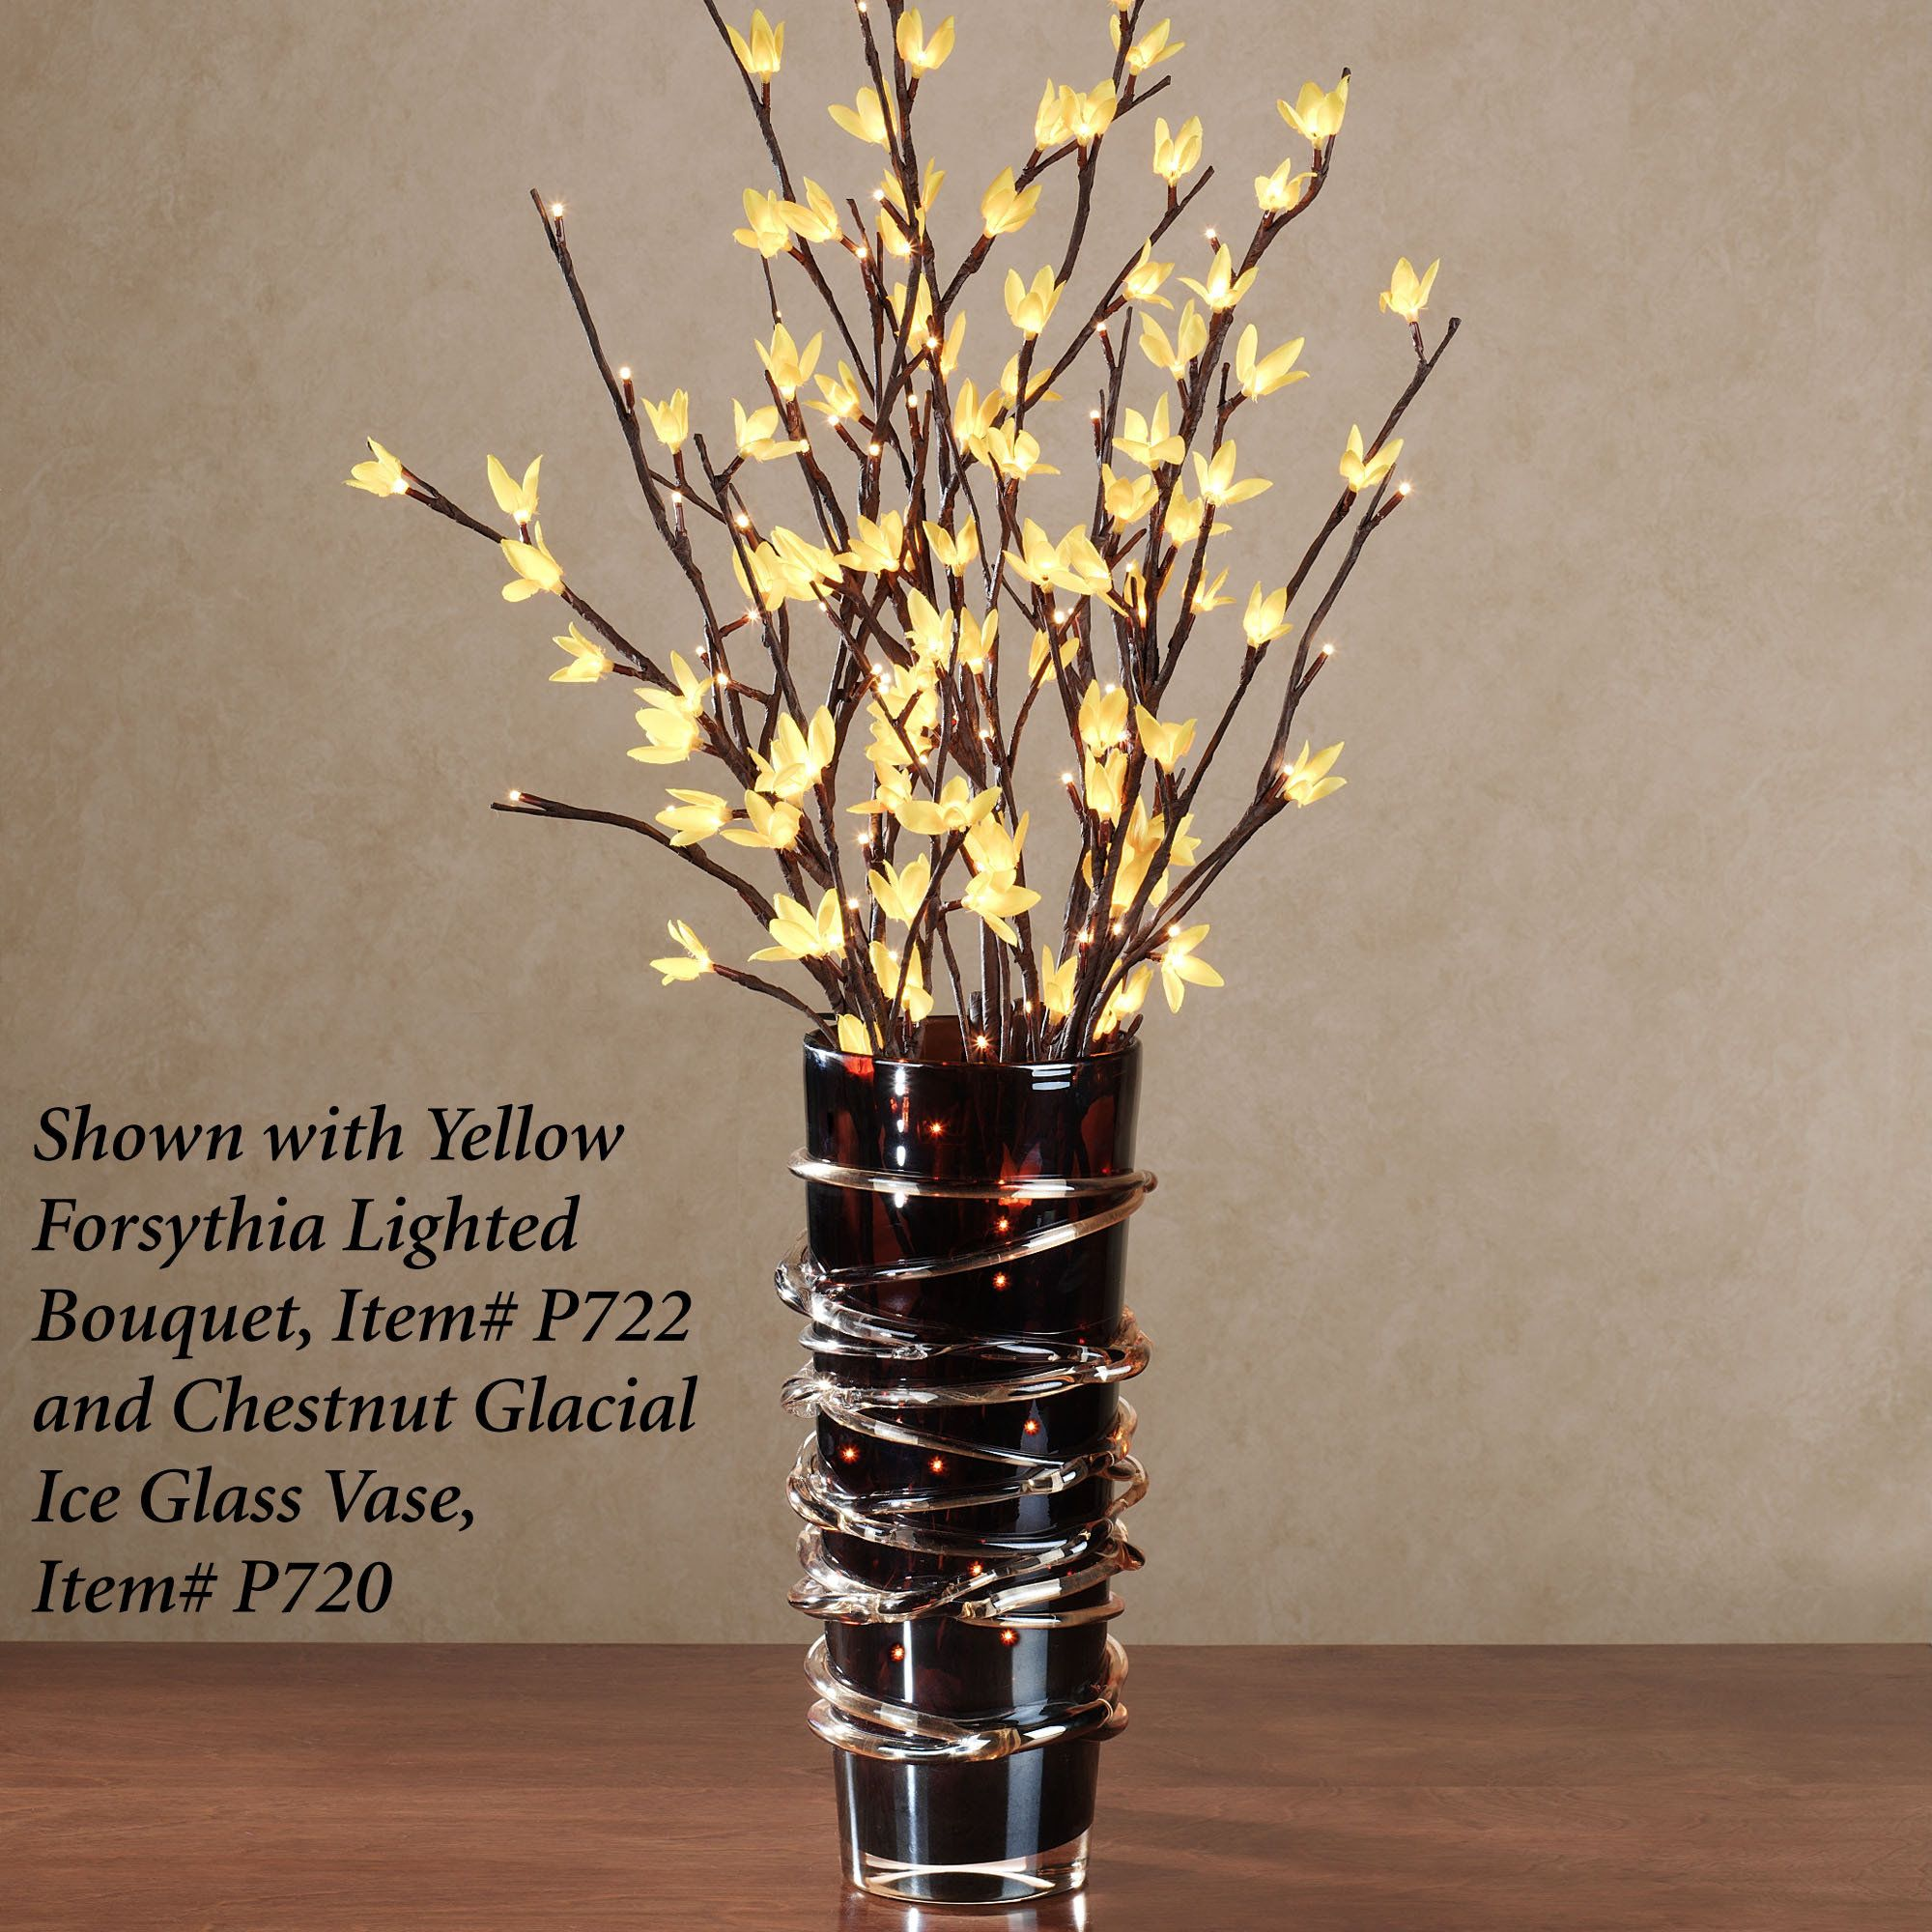 Emejing decorating with lighted branches gallery decorating a willow branch is an item received while pruning a willow tree reviewsmspy